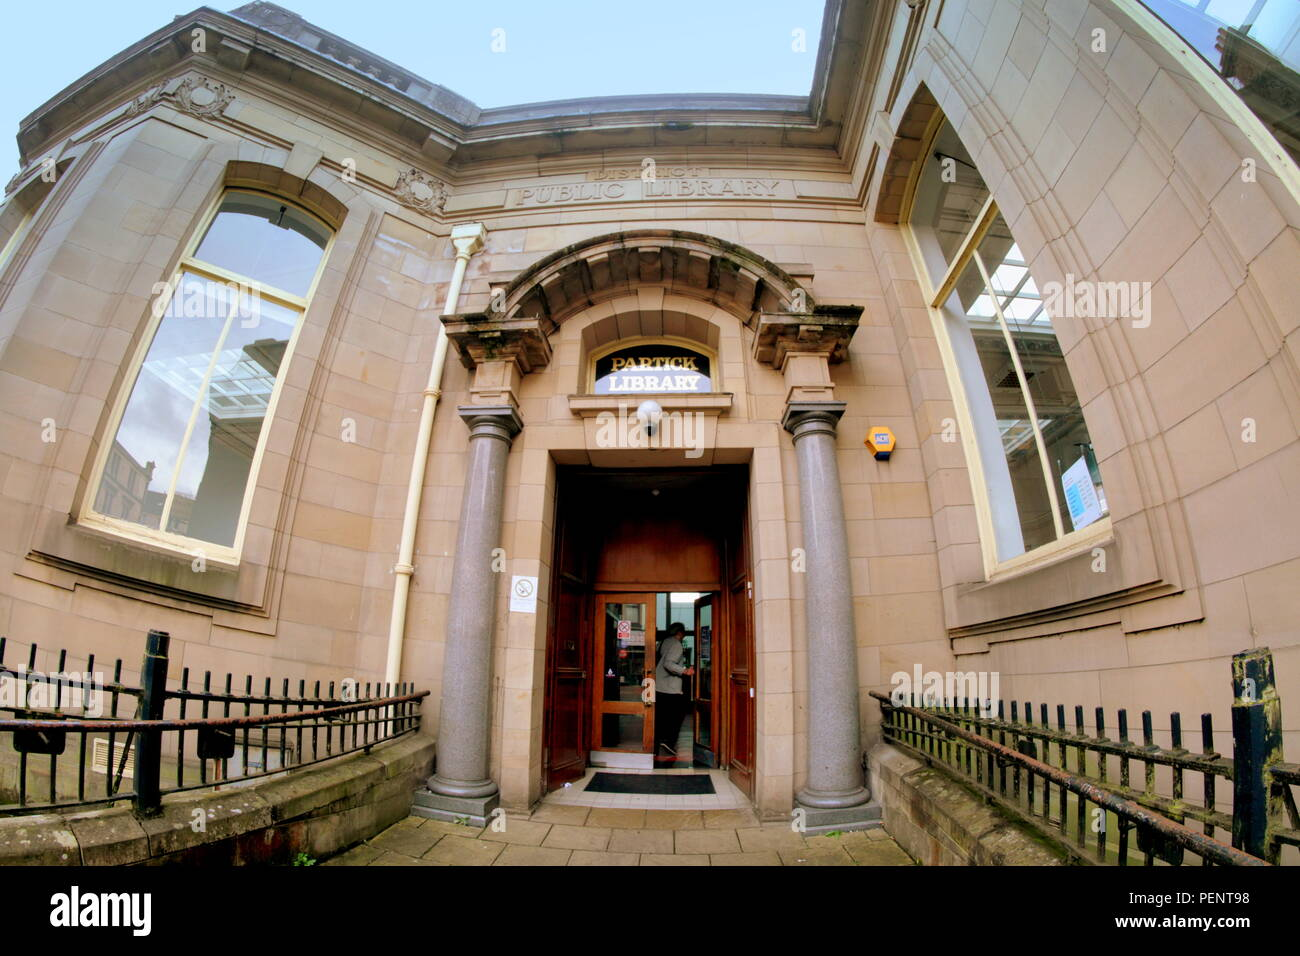 entrance to Partick Library,exterior  Dumbarton Road, Glasgow, UK - Stock Image